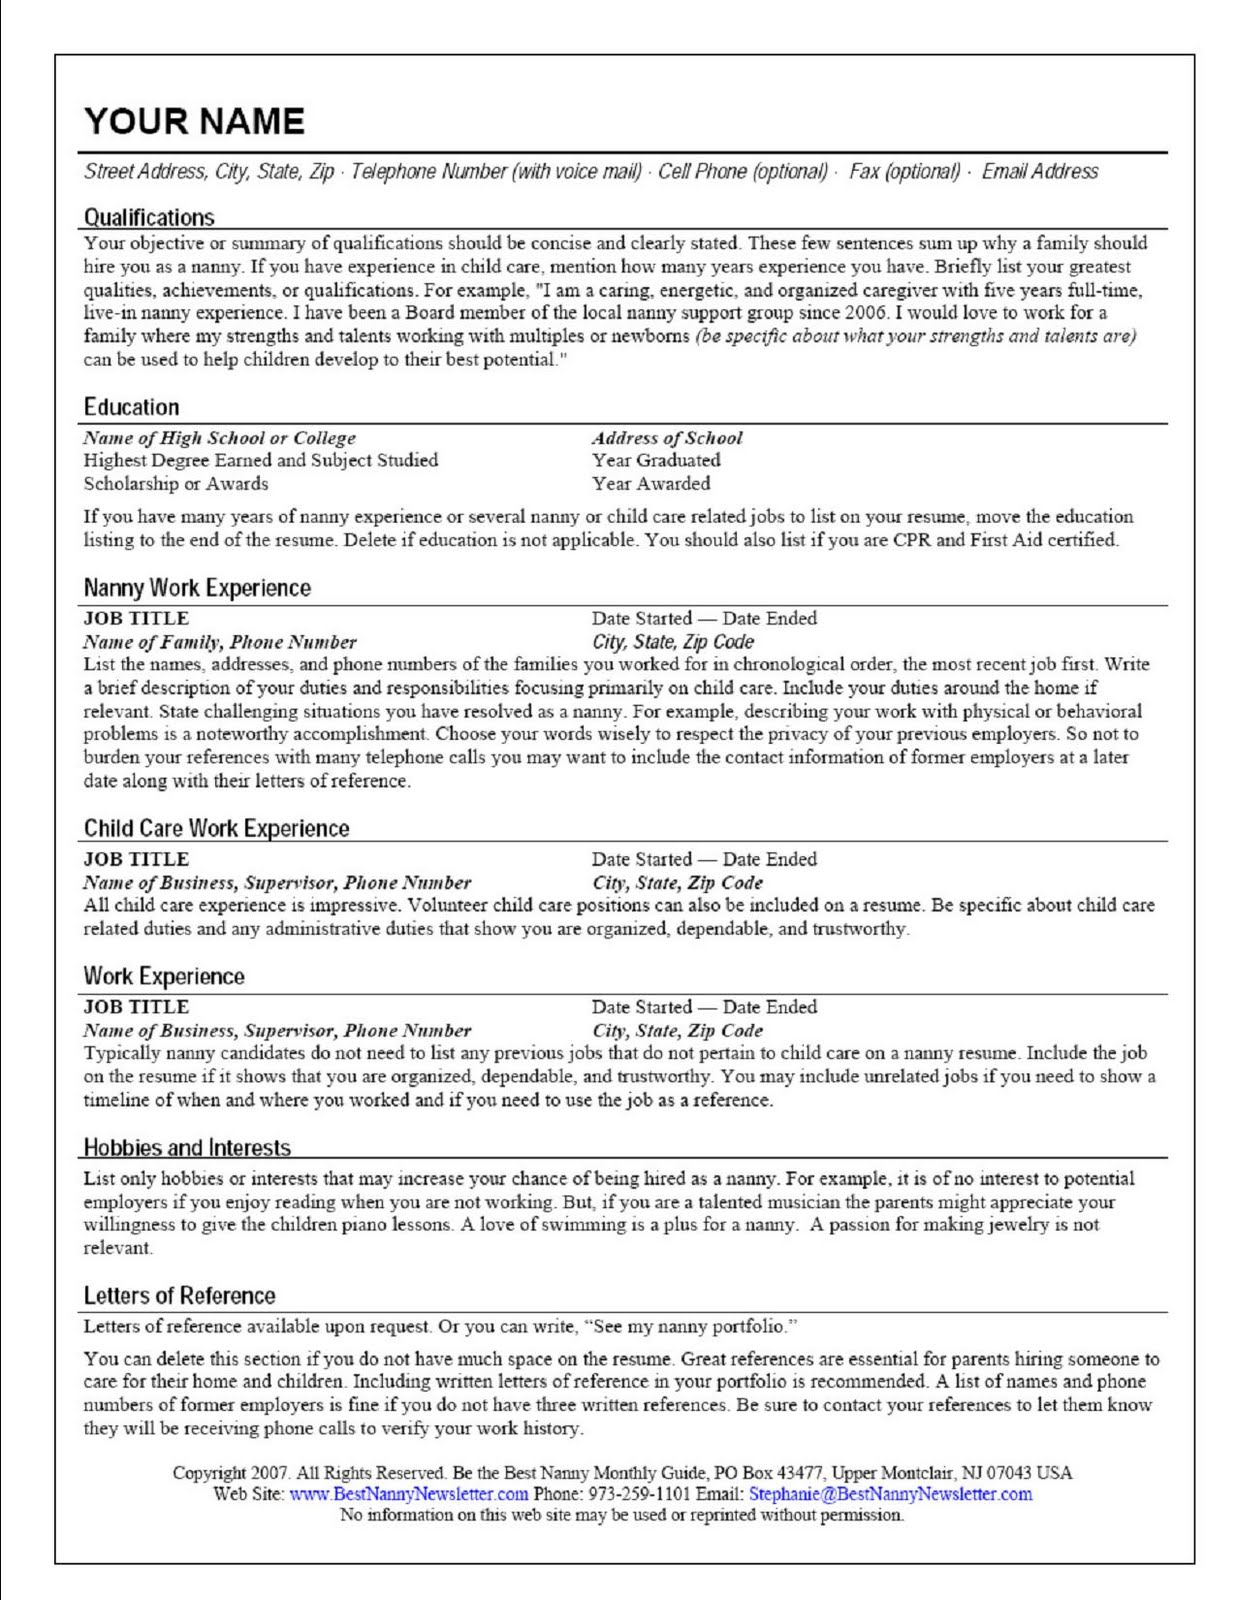 nanny job on a resume professional resume templates